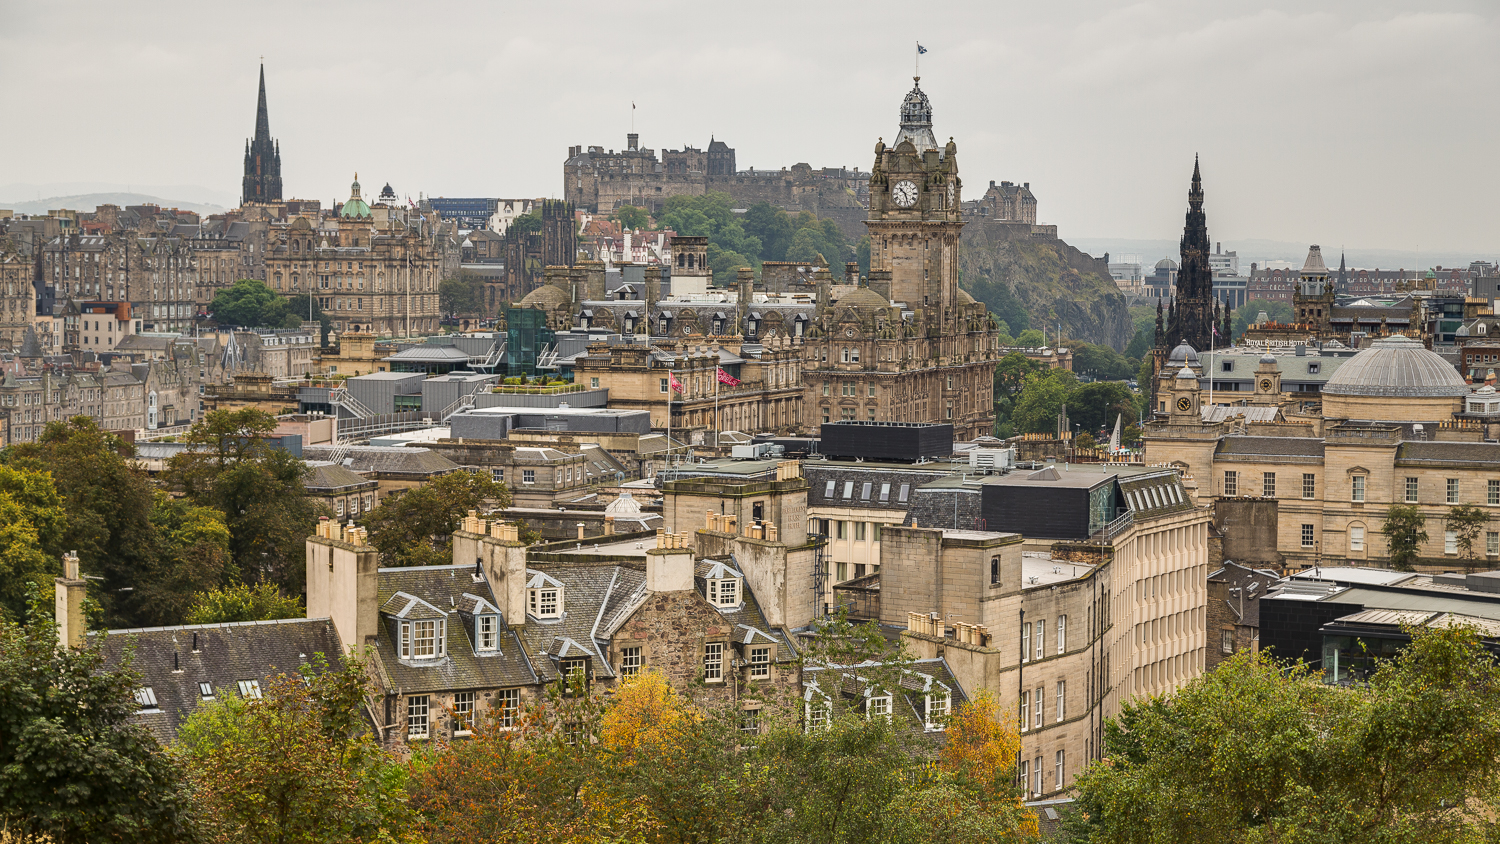 Edinburgh's Old- & New Town are jointly listed as a UNESCO World Heritage Site.